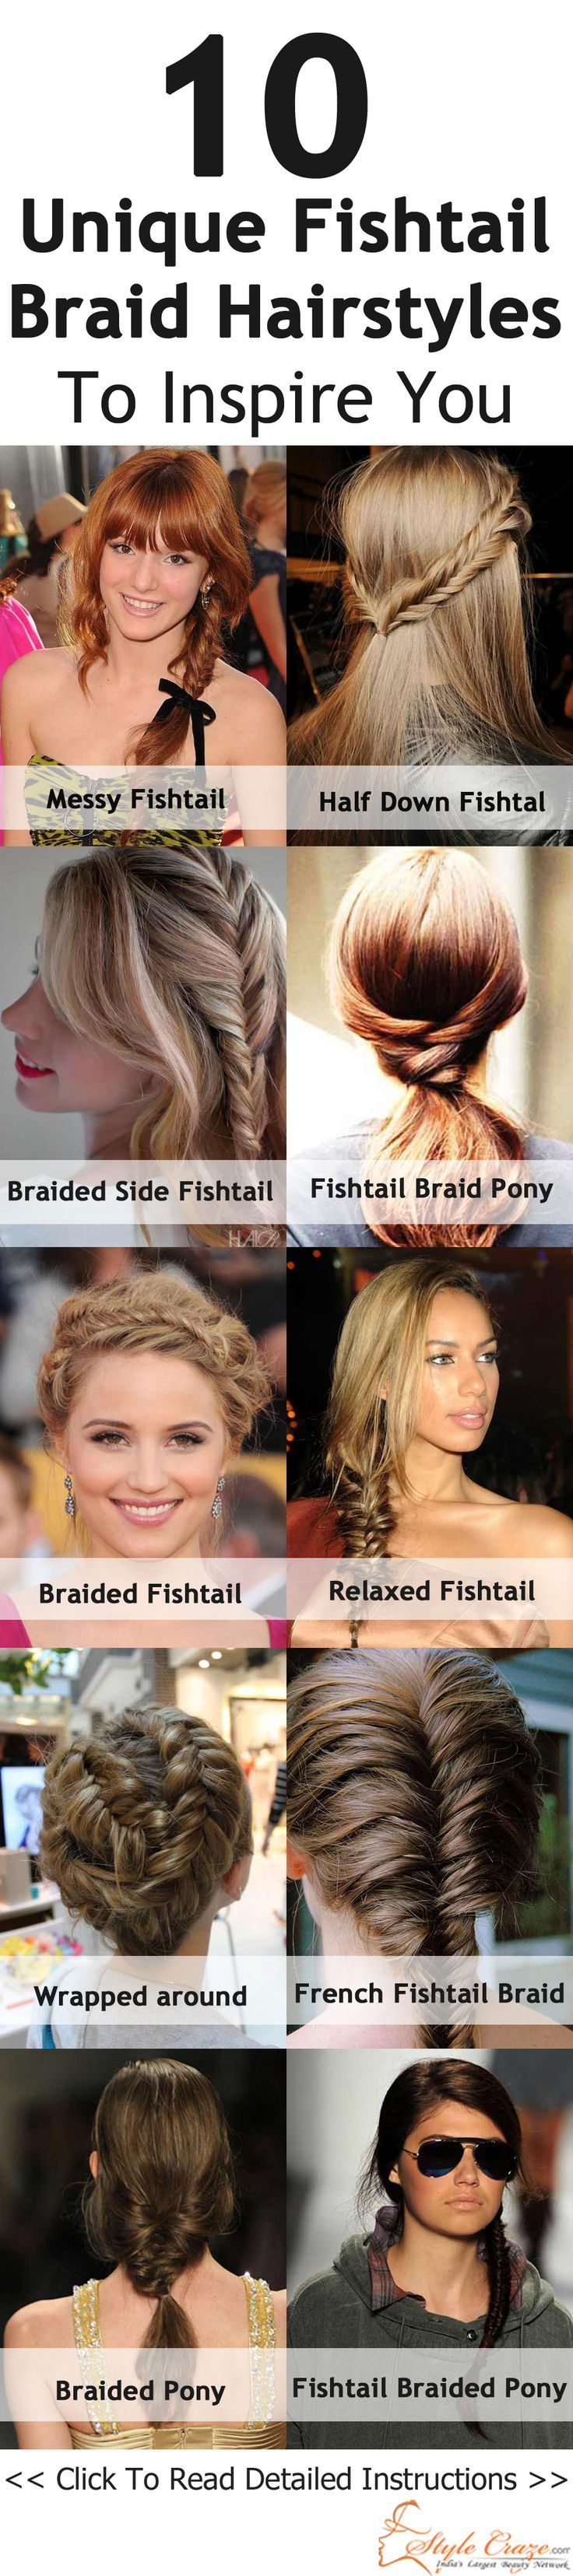 best hair beauty images on pinterest